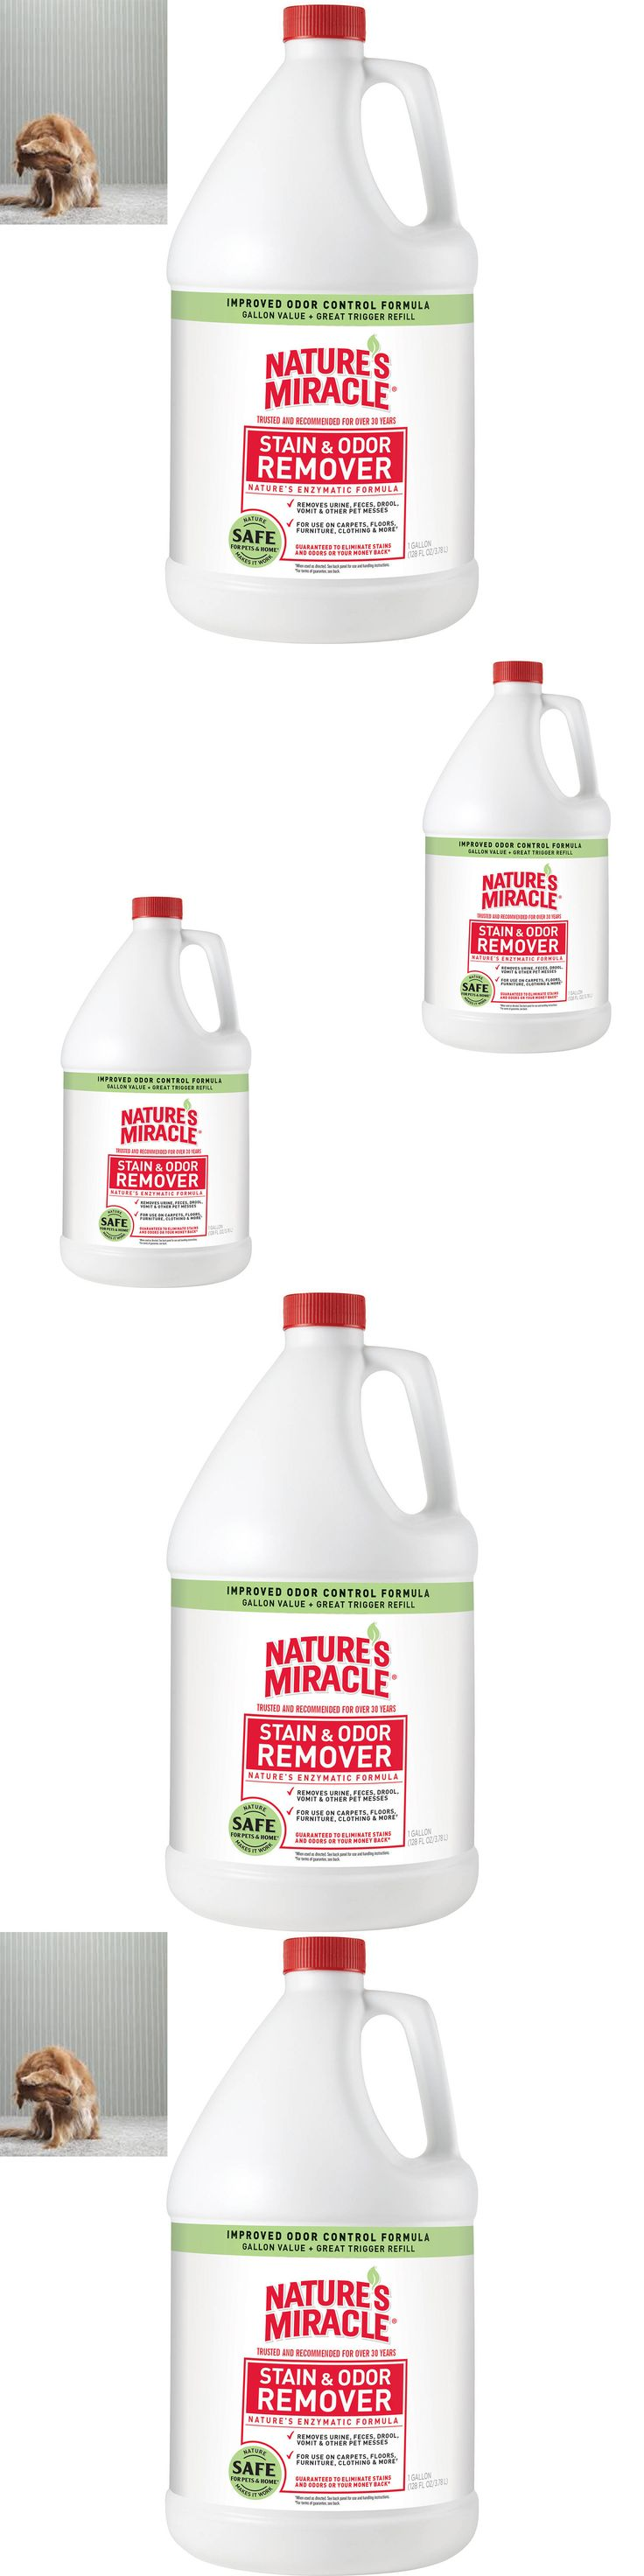 Odor and Stain Removal 134755: Odor Stain Remover Miracle Natures Gallon Pour Pet Deep Shampo Advanced Cleaner -> BUY IT NOW ONLY: $34.68 on eBay!